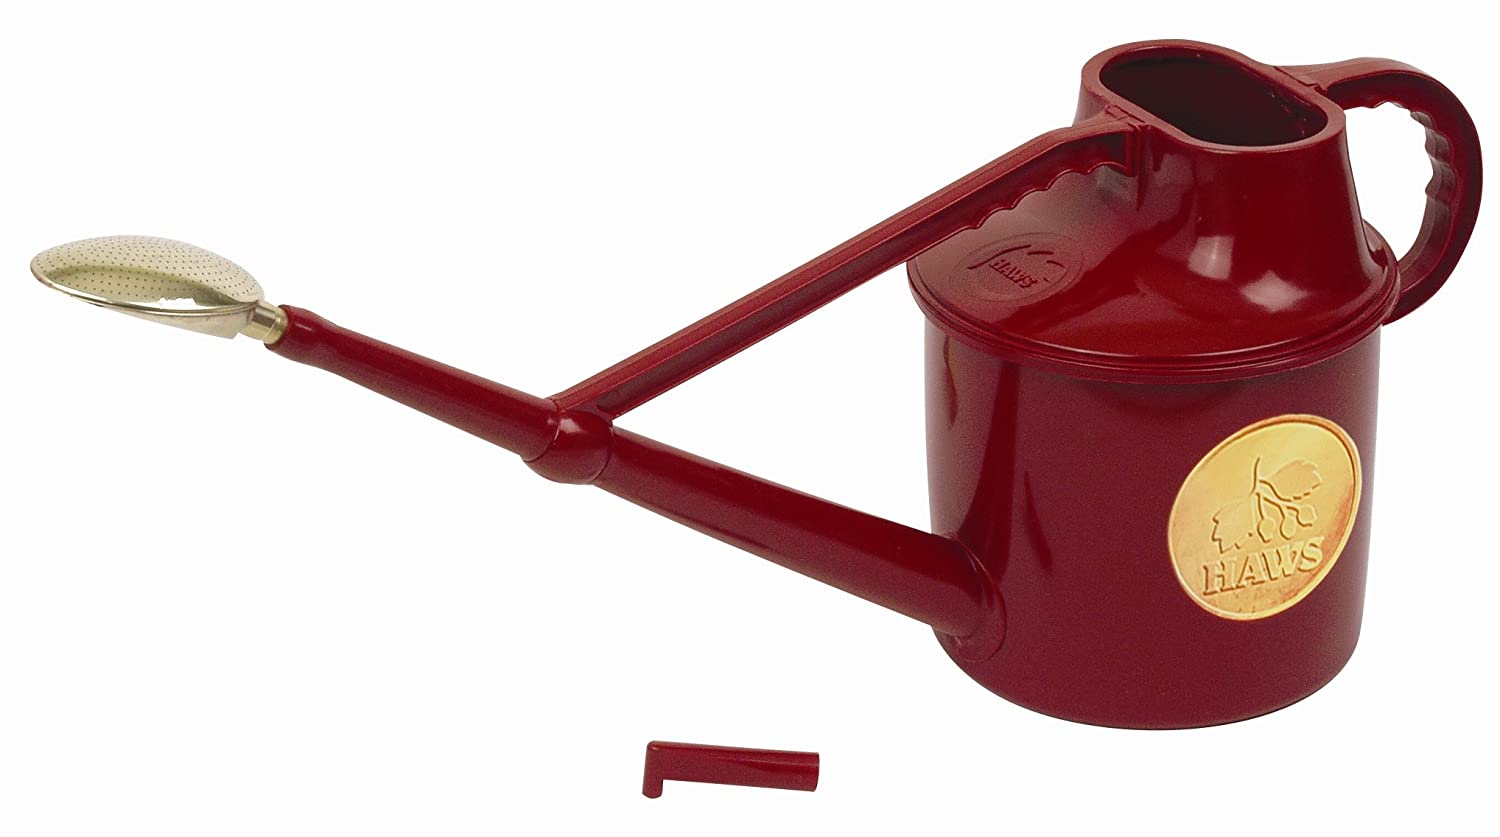 Haws Deluxe 7-Litre Outdoor Watering Can, Red